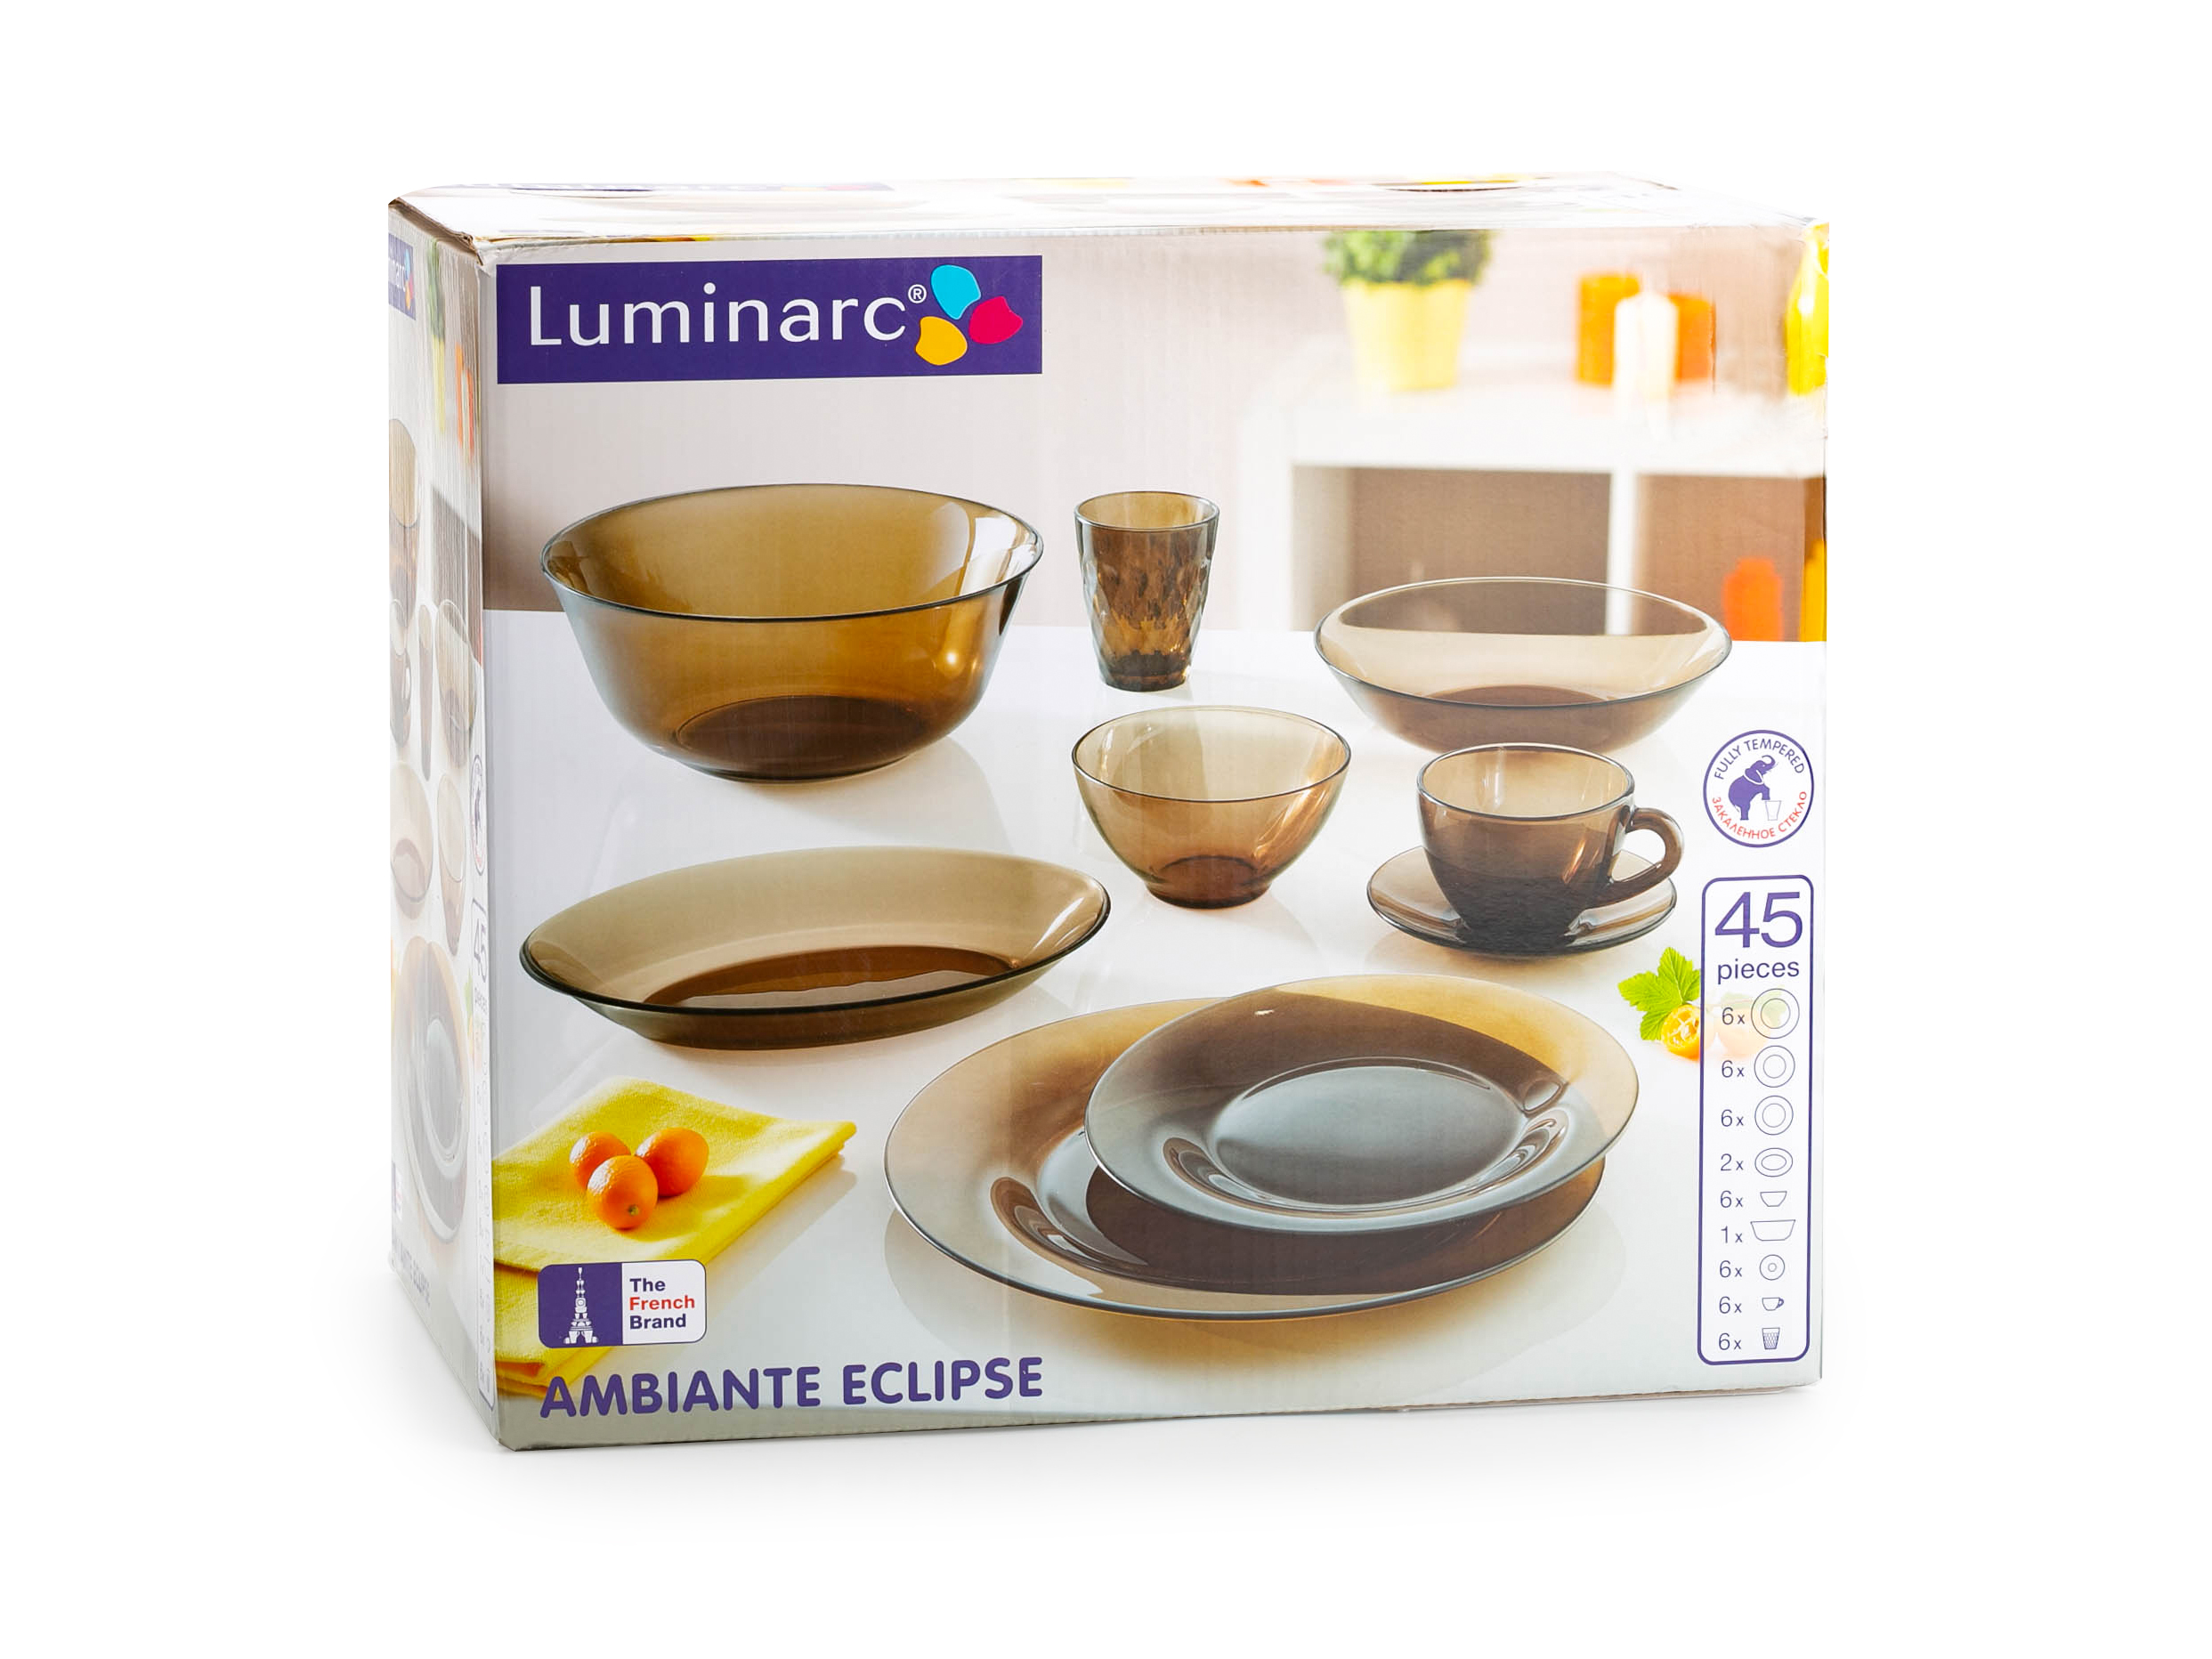 Столовый сервиз Luminarc Ambiante Eclipse 45 предметов eclipse мini 45